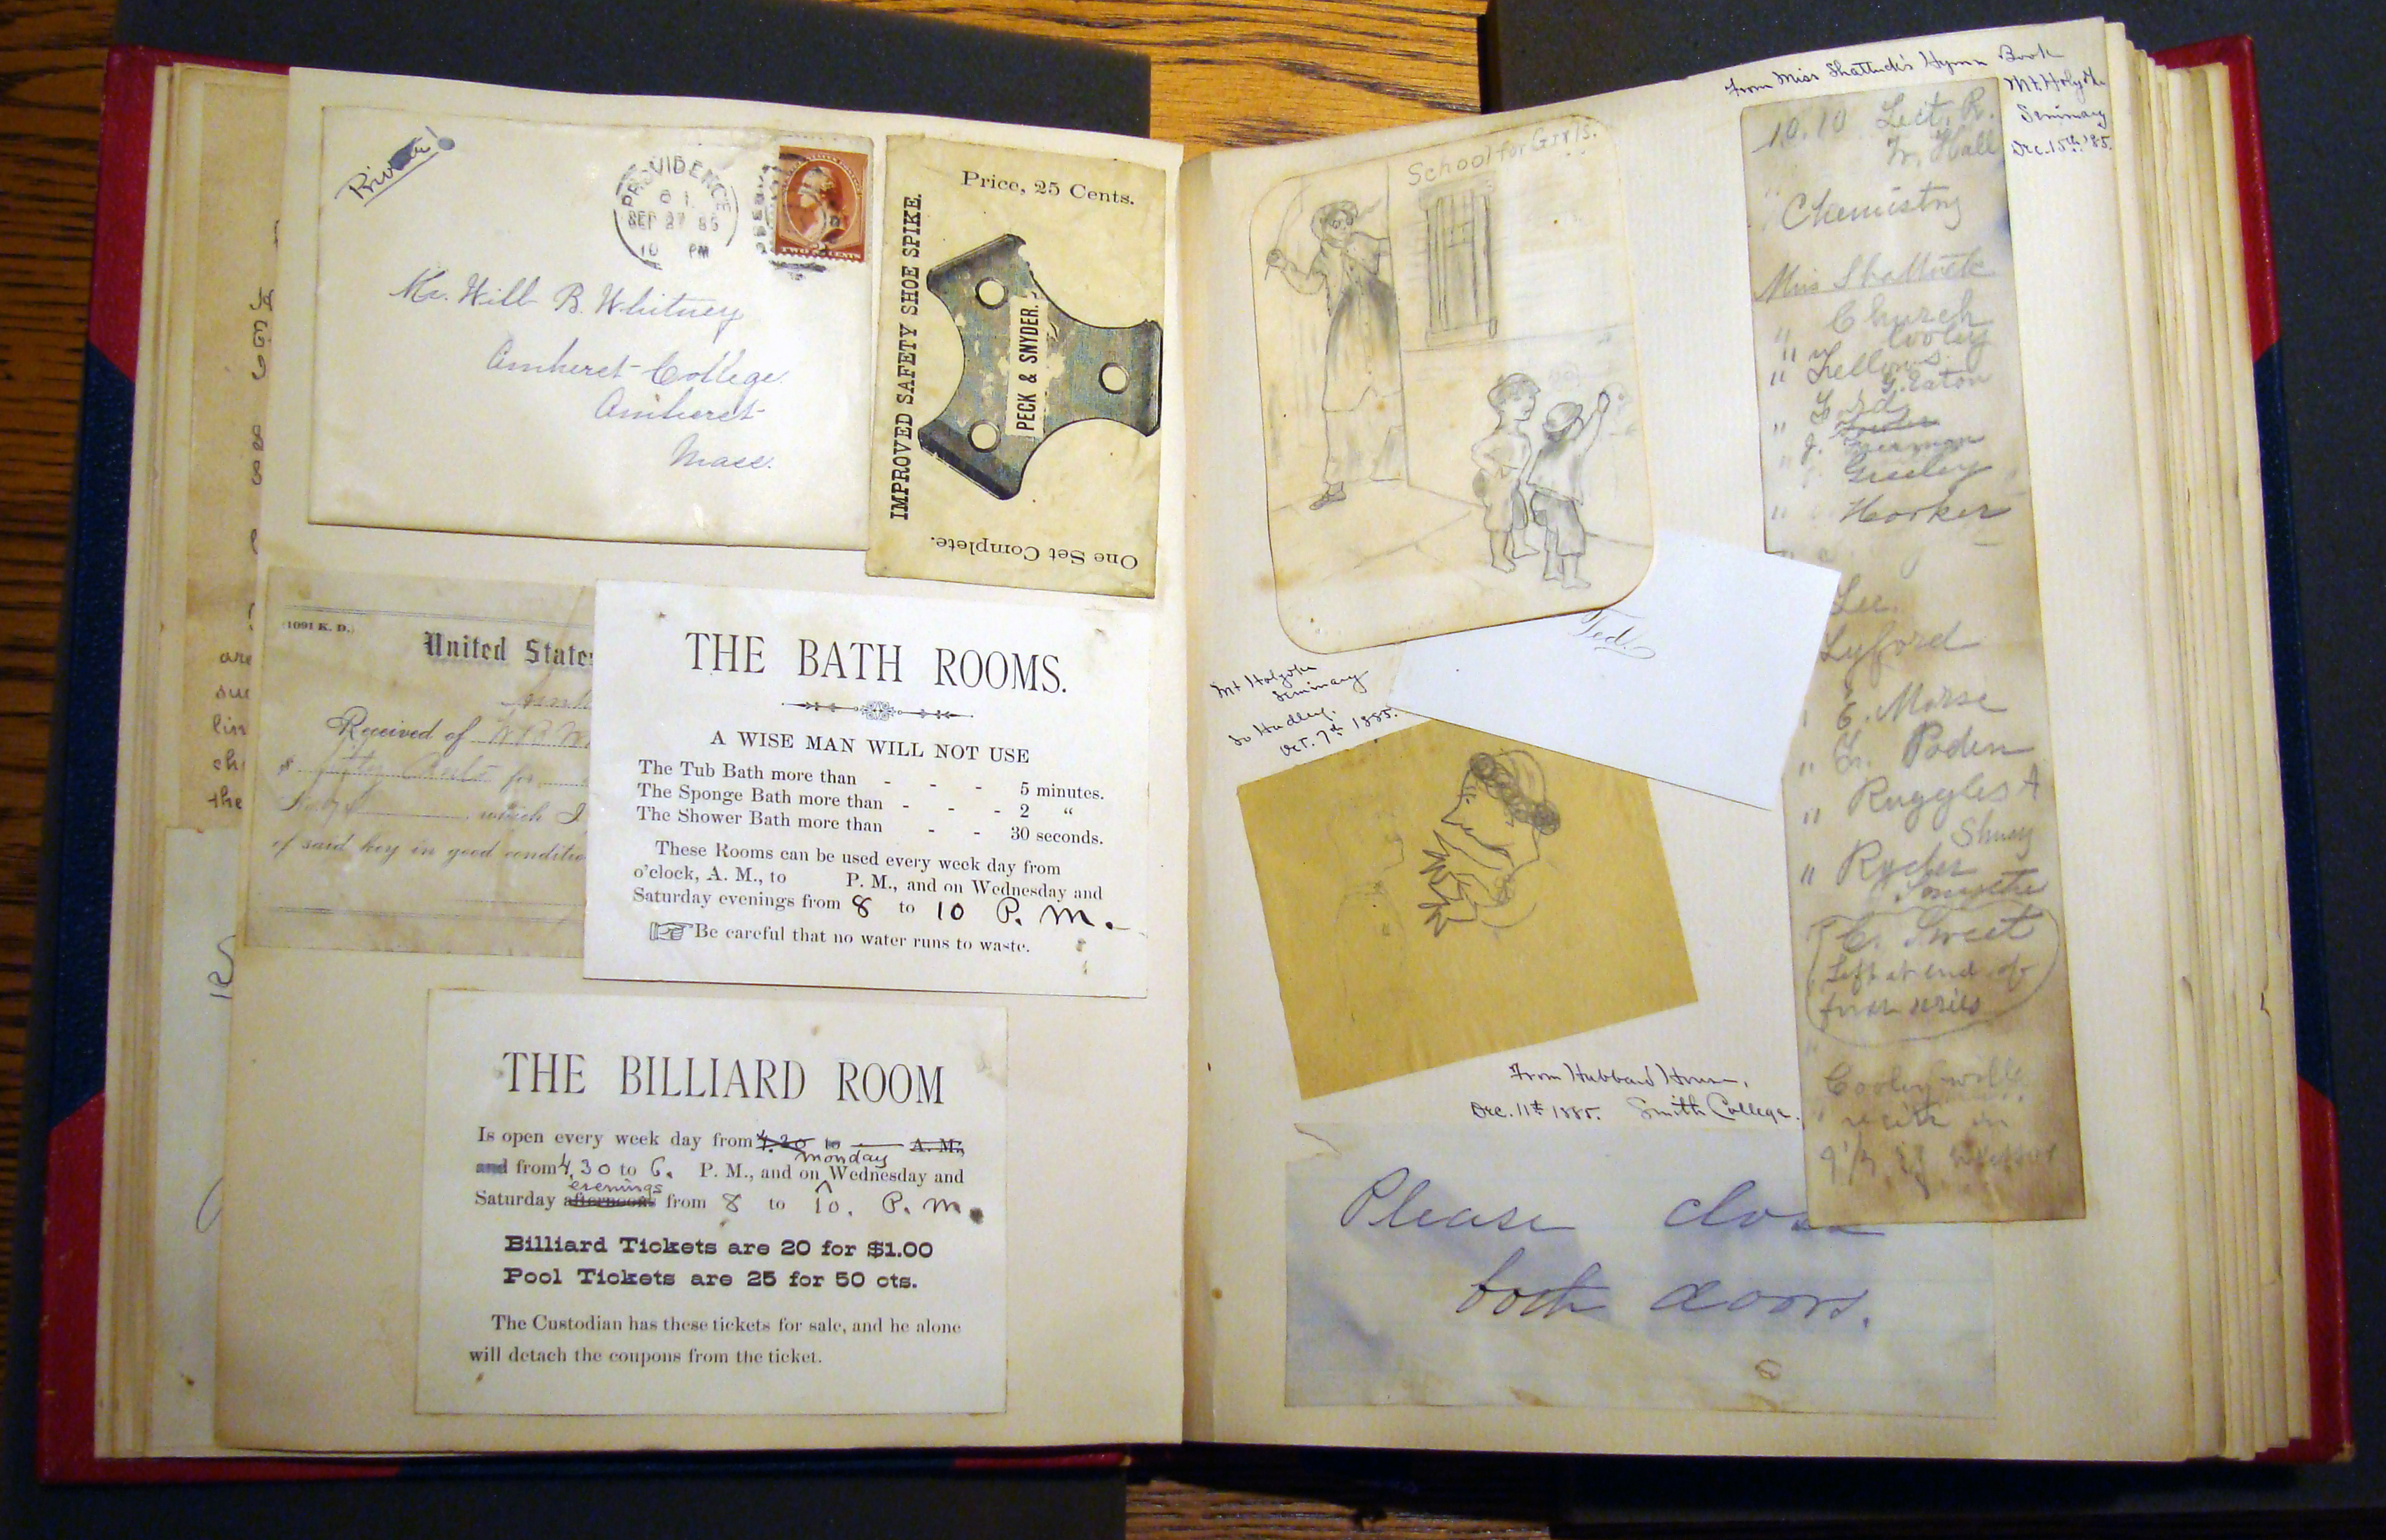 image of scrapbook showing clippings, letters, cartoon